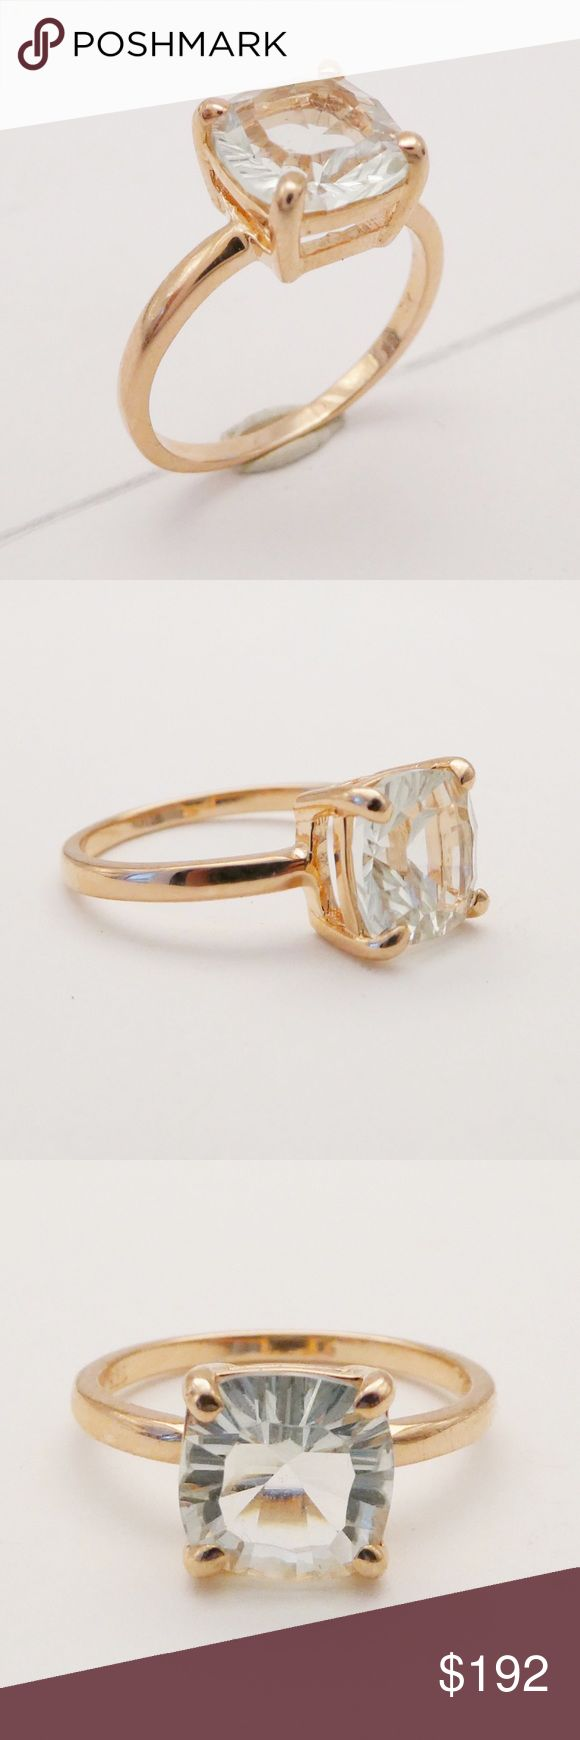 💎🌹 Rose Gold & Green Amethyst Square Ring🌹💎 This may be my most favorite piece in the boutique! 1.4 CT Square Cut Green Amethyst claw set in 14K Rose Gold plated 925 Sterling Silver. The subdued colors of this piece playing off of each other is incredible! Ask me about additional sizes! Cortina Jewelry Jewelry Rings